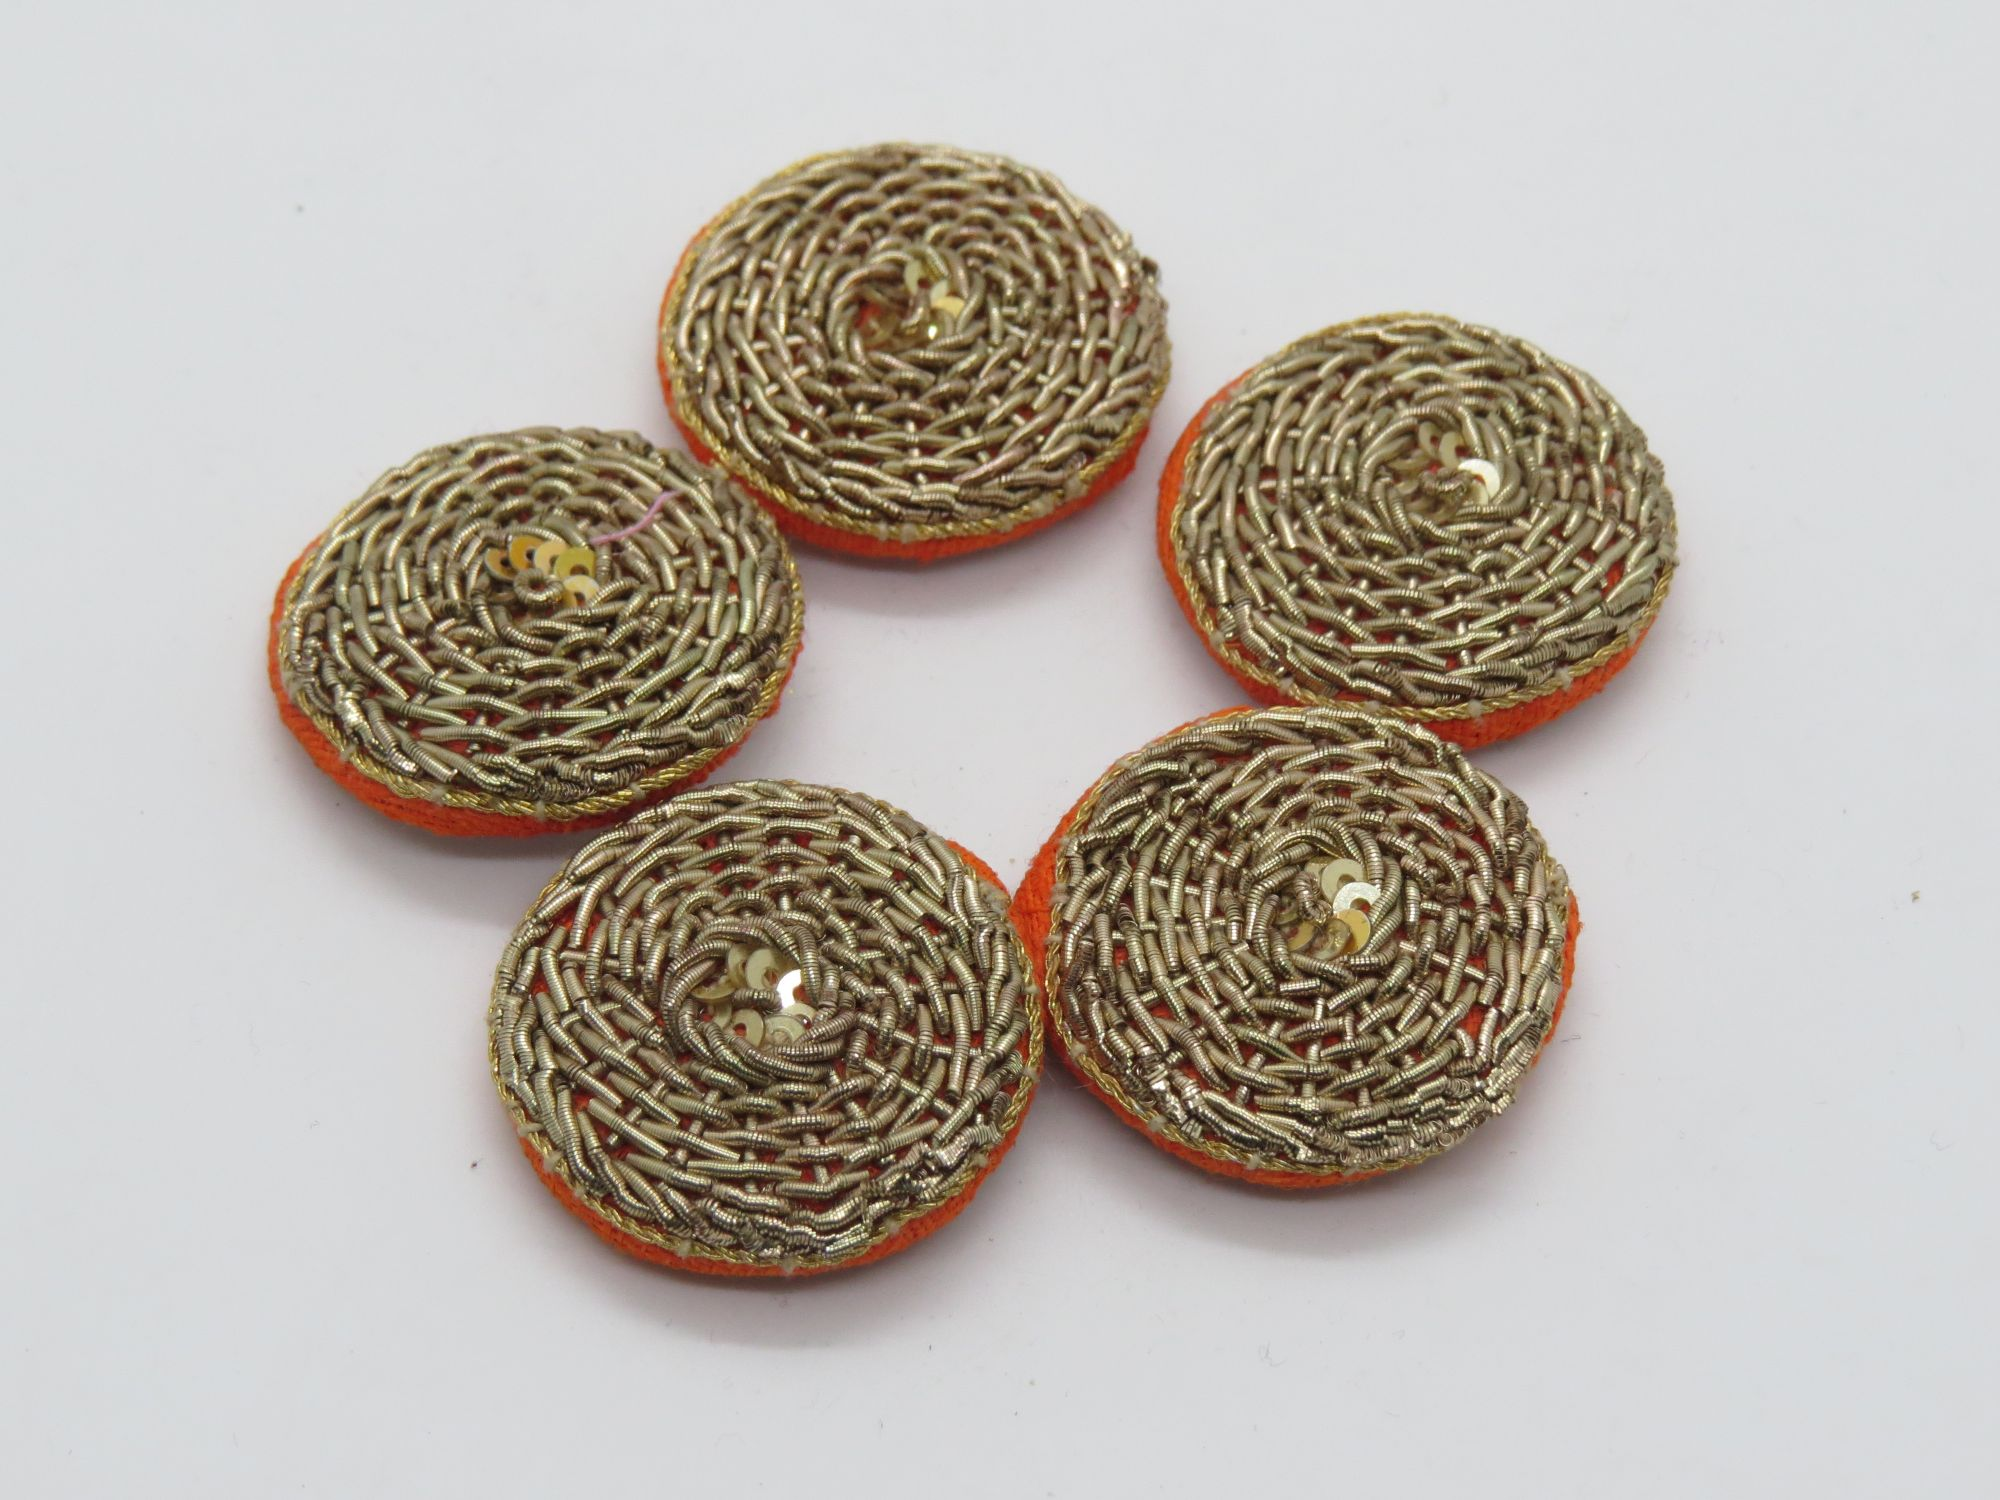 Hand Zardozi Work Embellishment Button Indian Fancy Zari Zardozi Bridesmaids Design Decorative Hand Crafted Fabric Thread Work Sewing Buttons